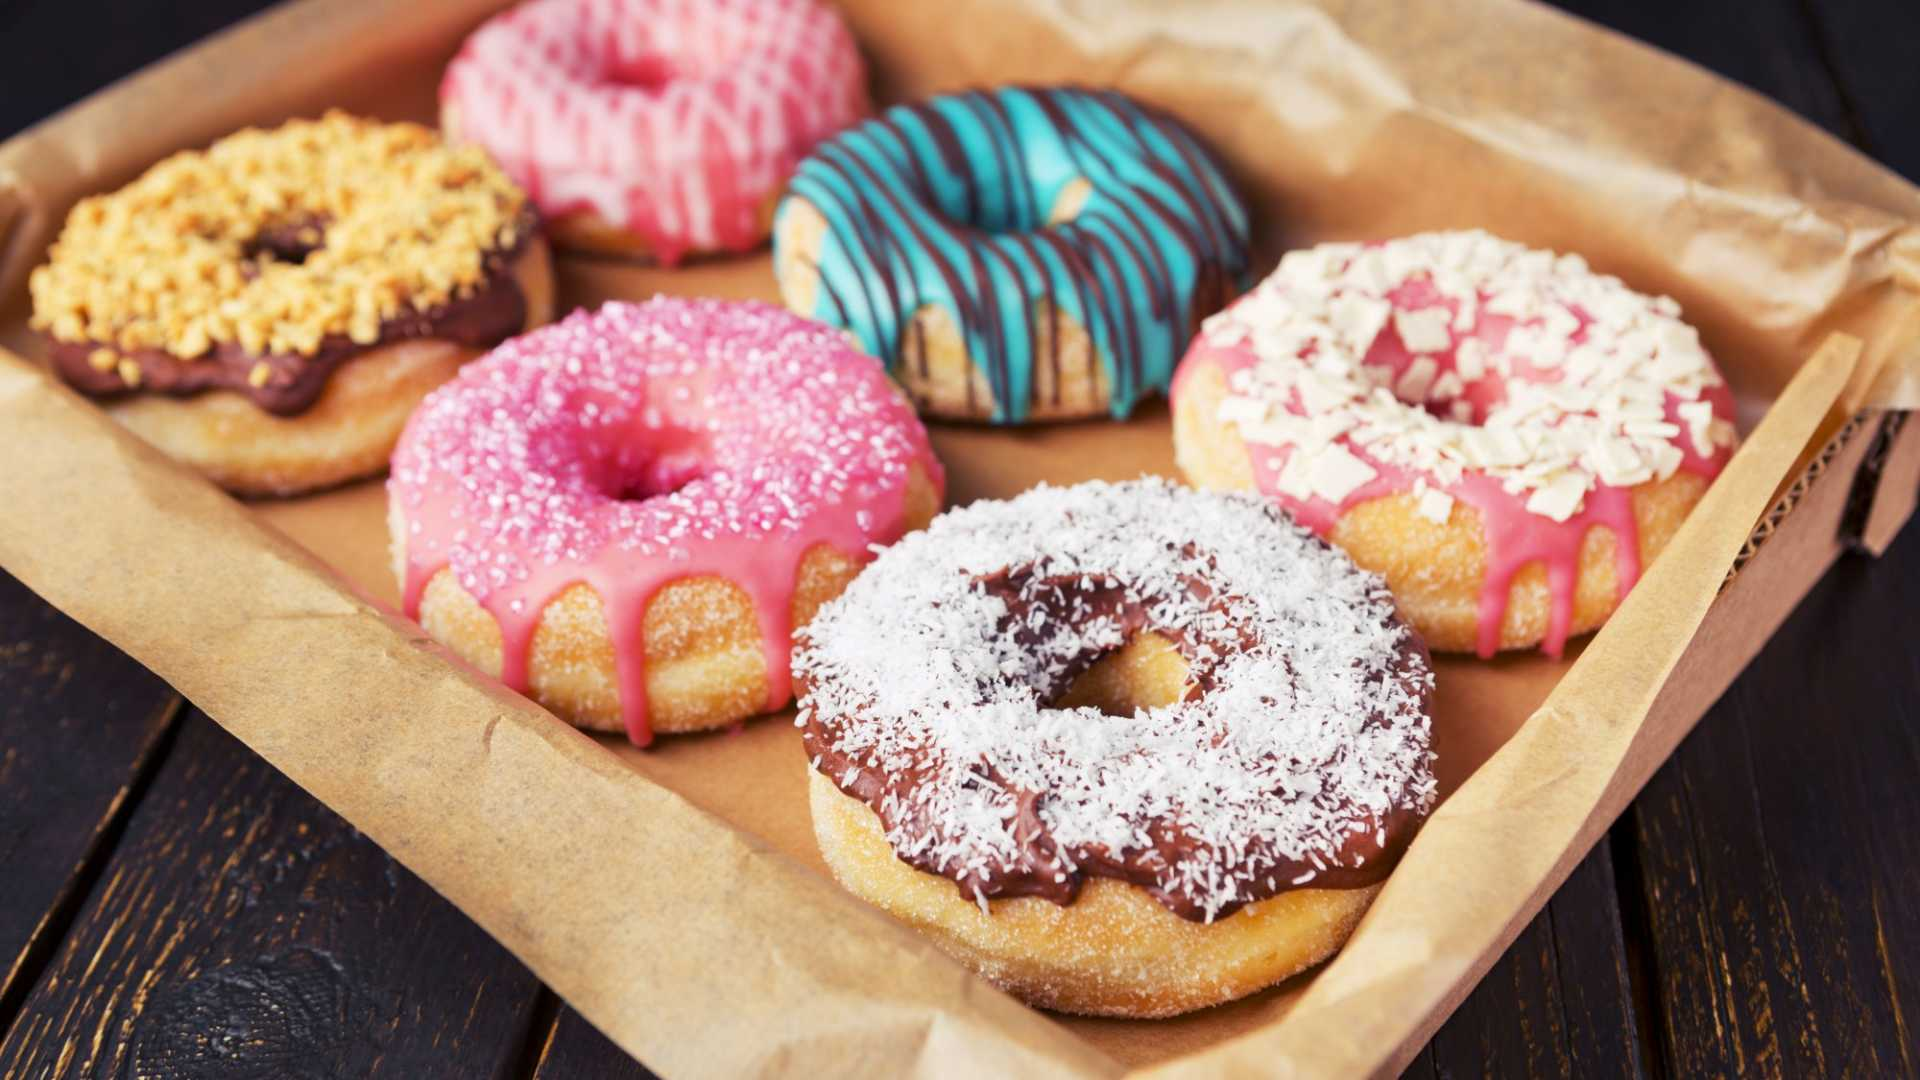 Cricket Doughnuts Are Now a Thing in Portland (and They Look Delicious!)